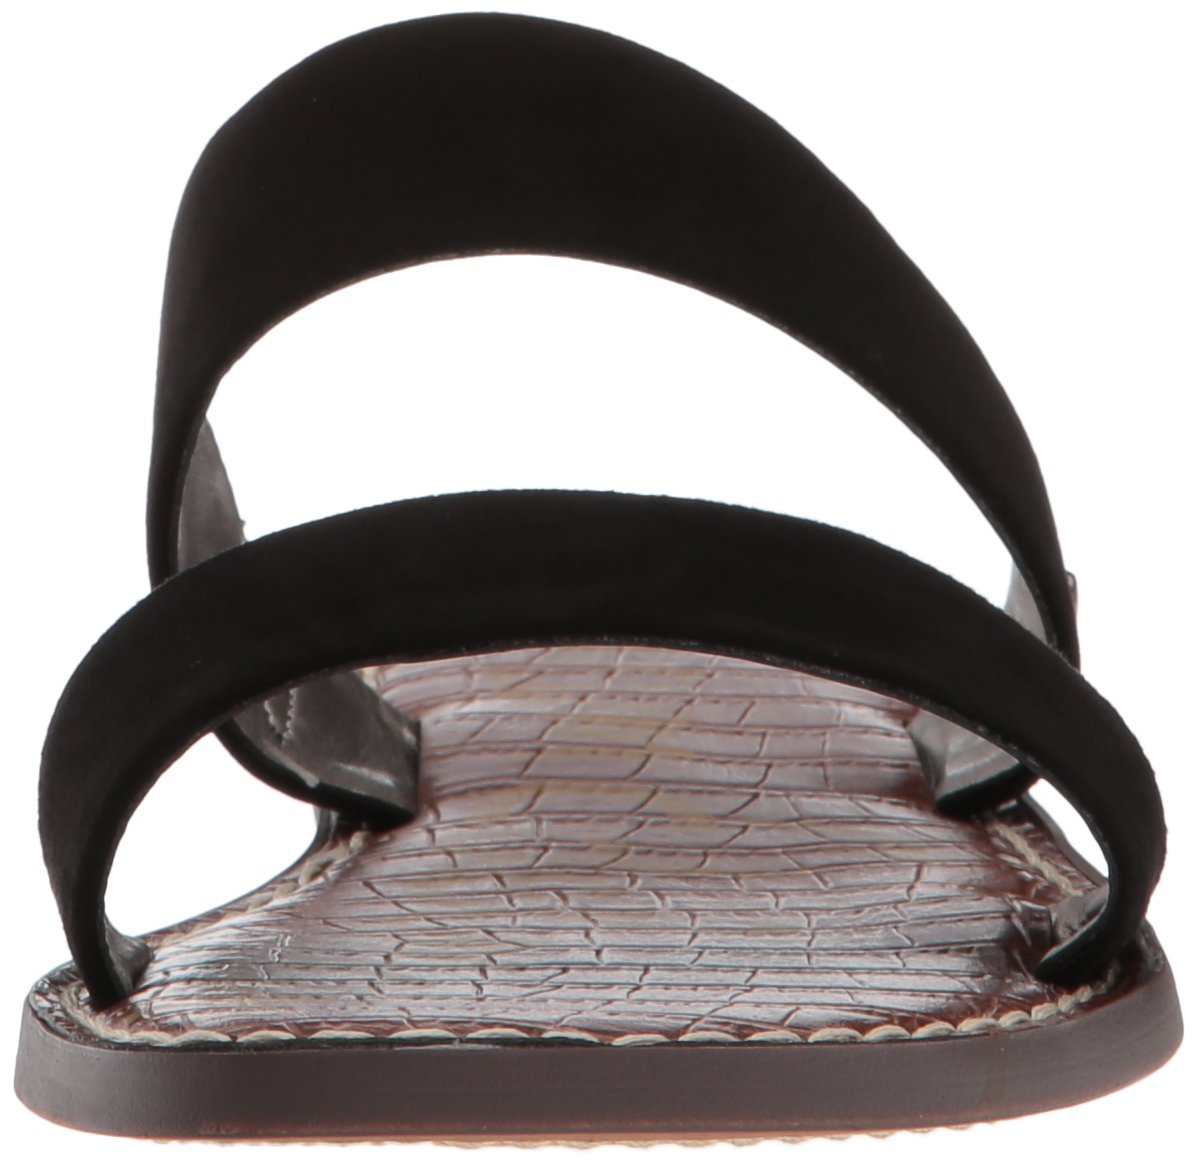 Sam Edelman Women's Gala Slide US|Black Sandal B0767DQPBD 7.5 B(M) US|Black Slide Suede fa6a96